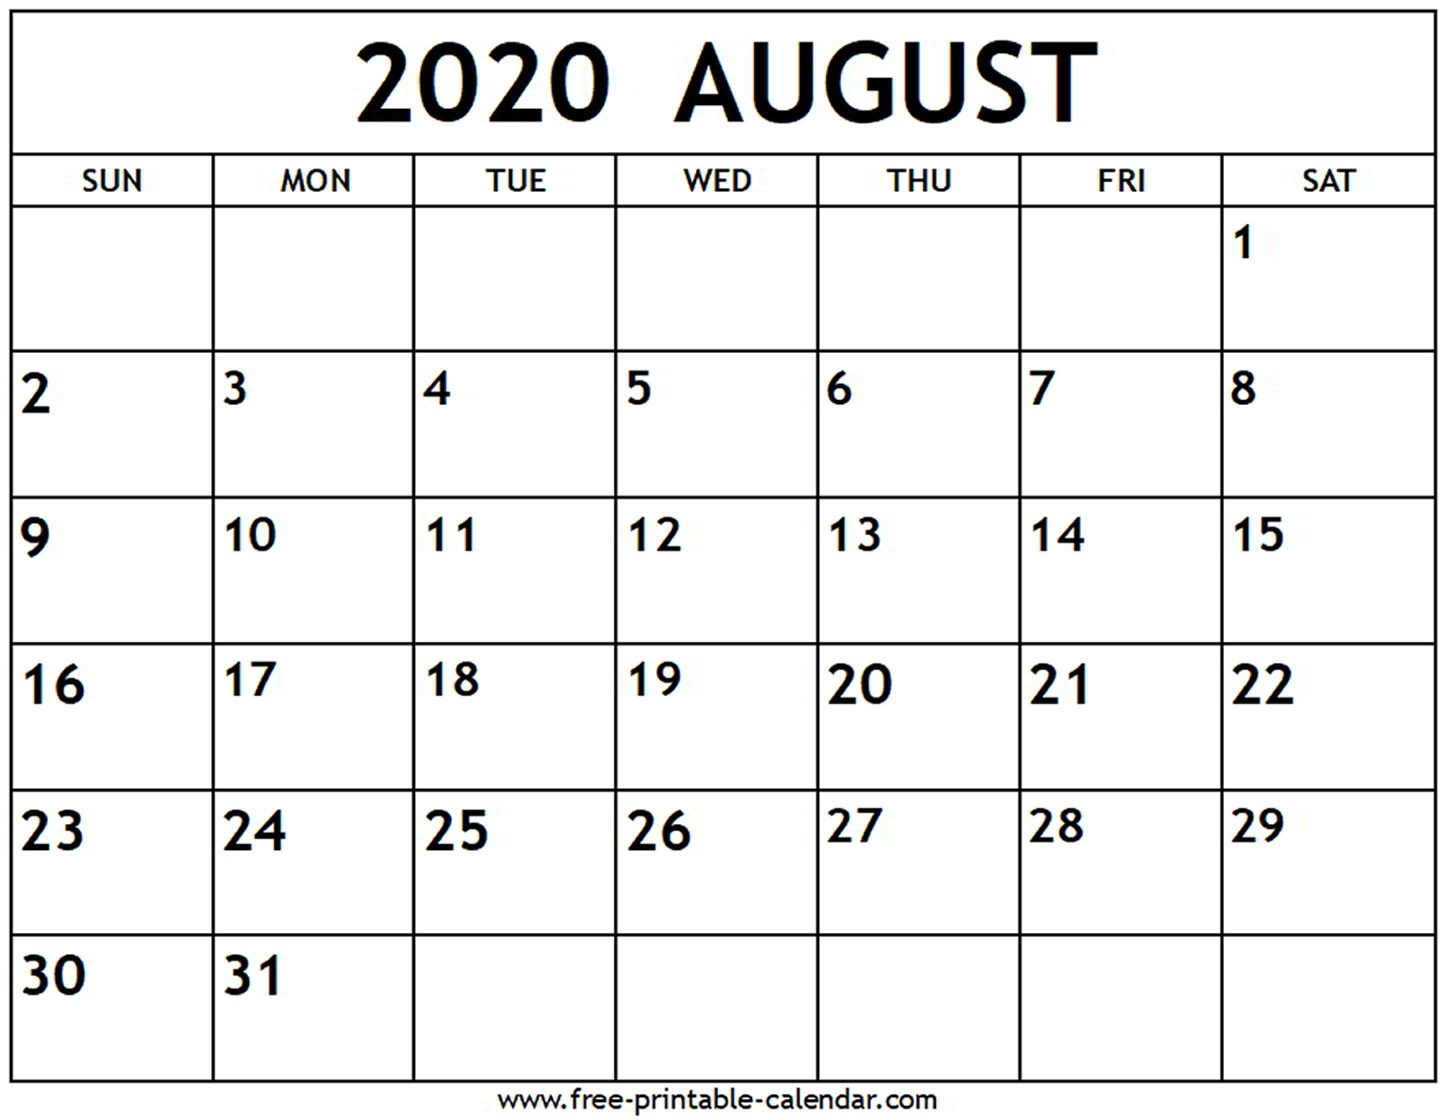 August 2020 Calendar - Free-Printable-Calendar-Printable Monthly Calendar June July August 2020